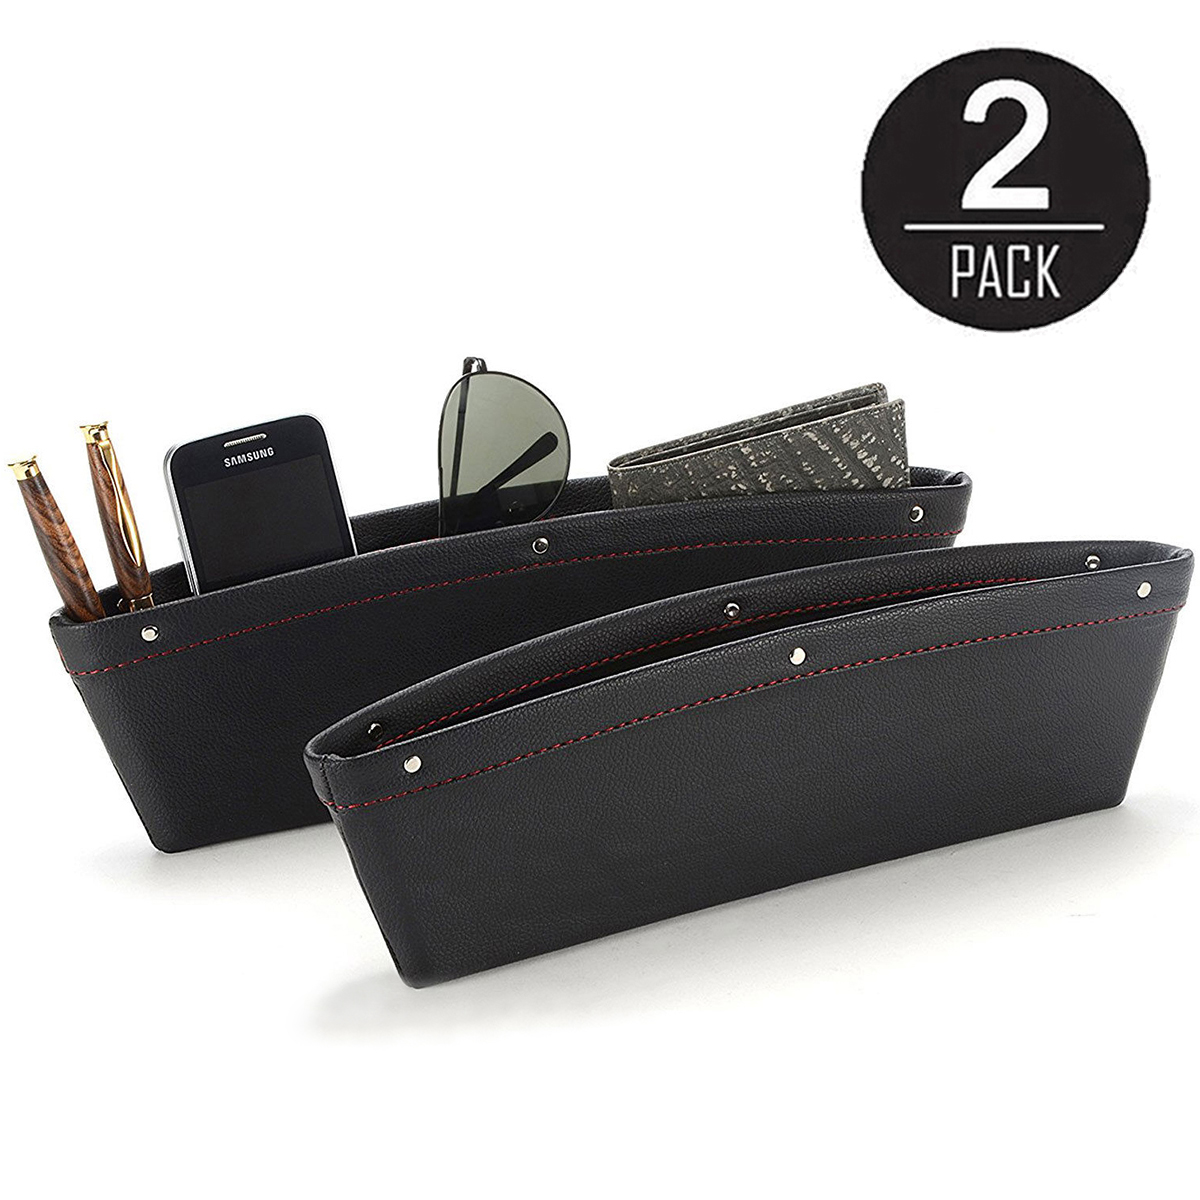 Stop Before It Drops Passenger Side Car Seat Organizer Caddy Slit Gap Filler PU Leather KOBWA Console Side Pocket with Coin Organizer /& Cup Holder /& 2 USB Charging Ports